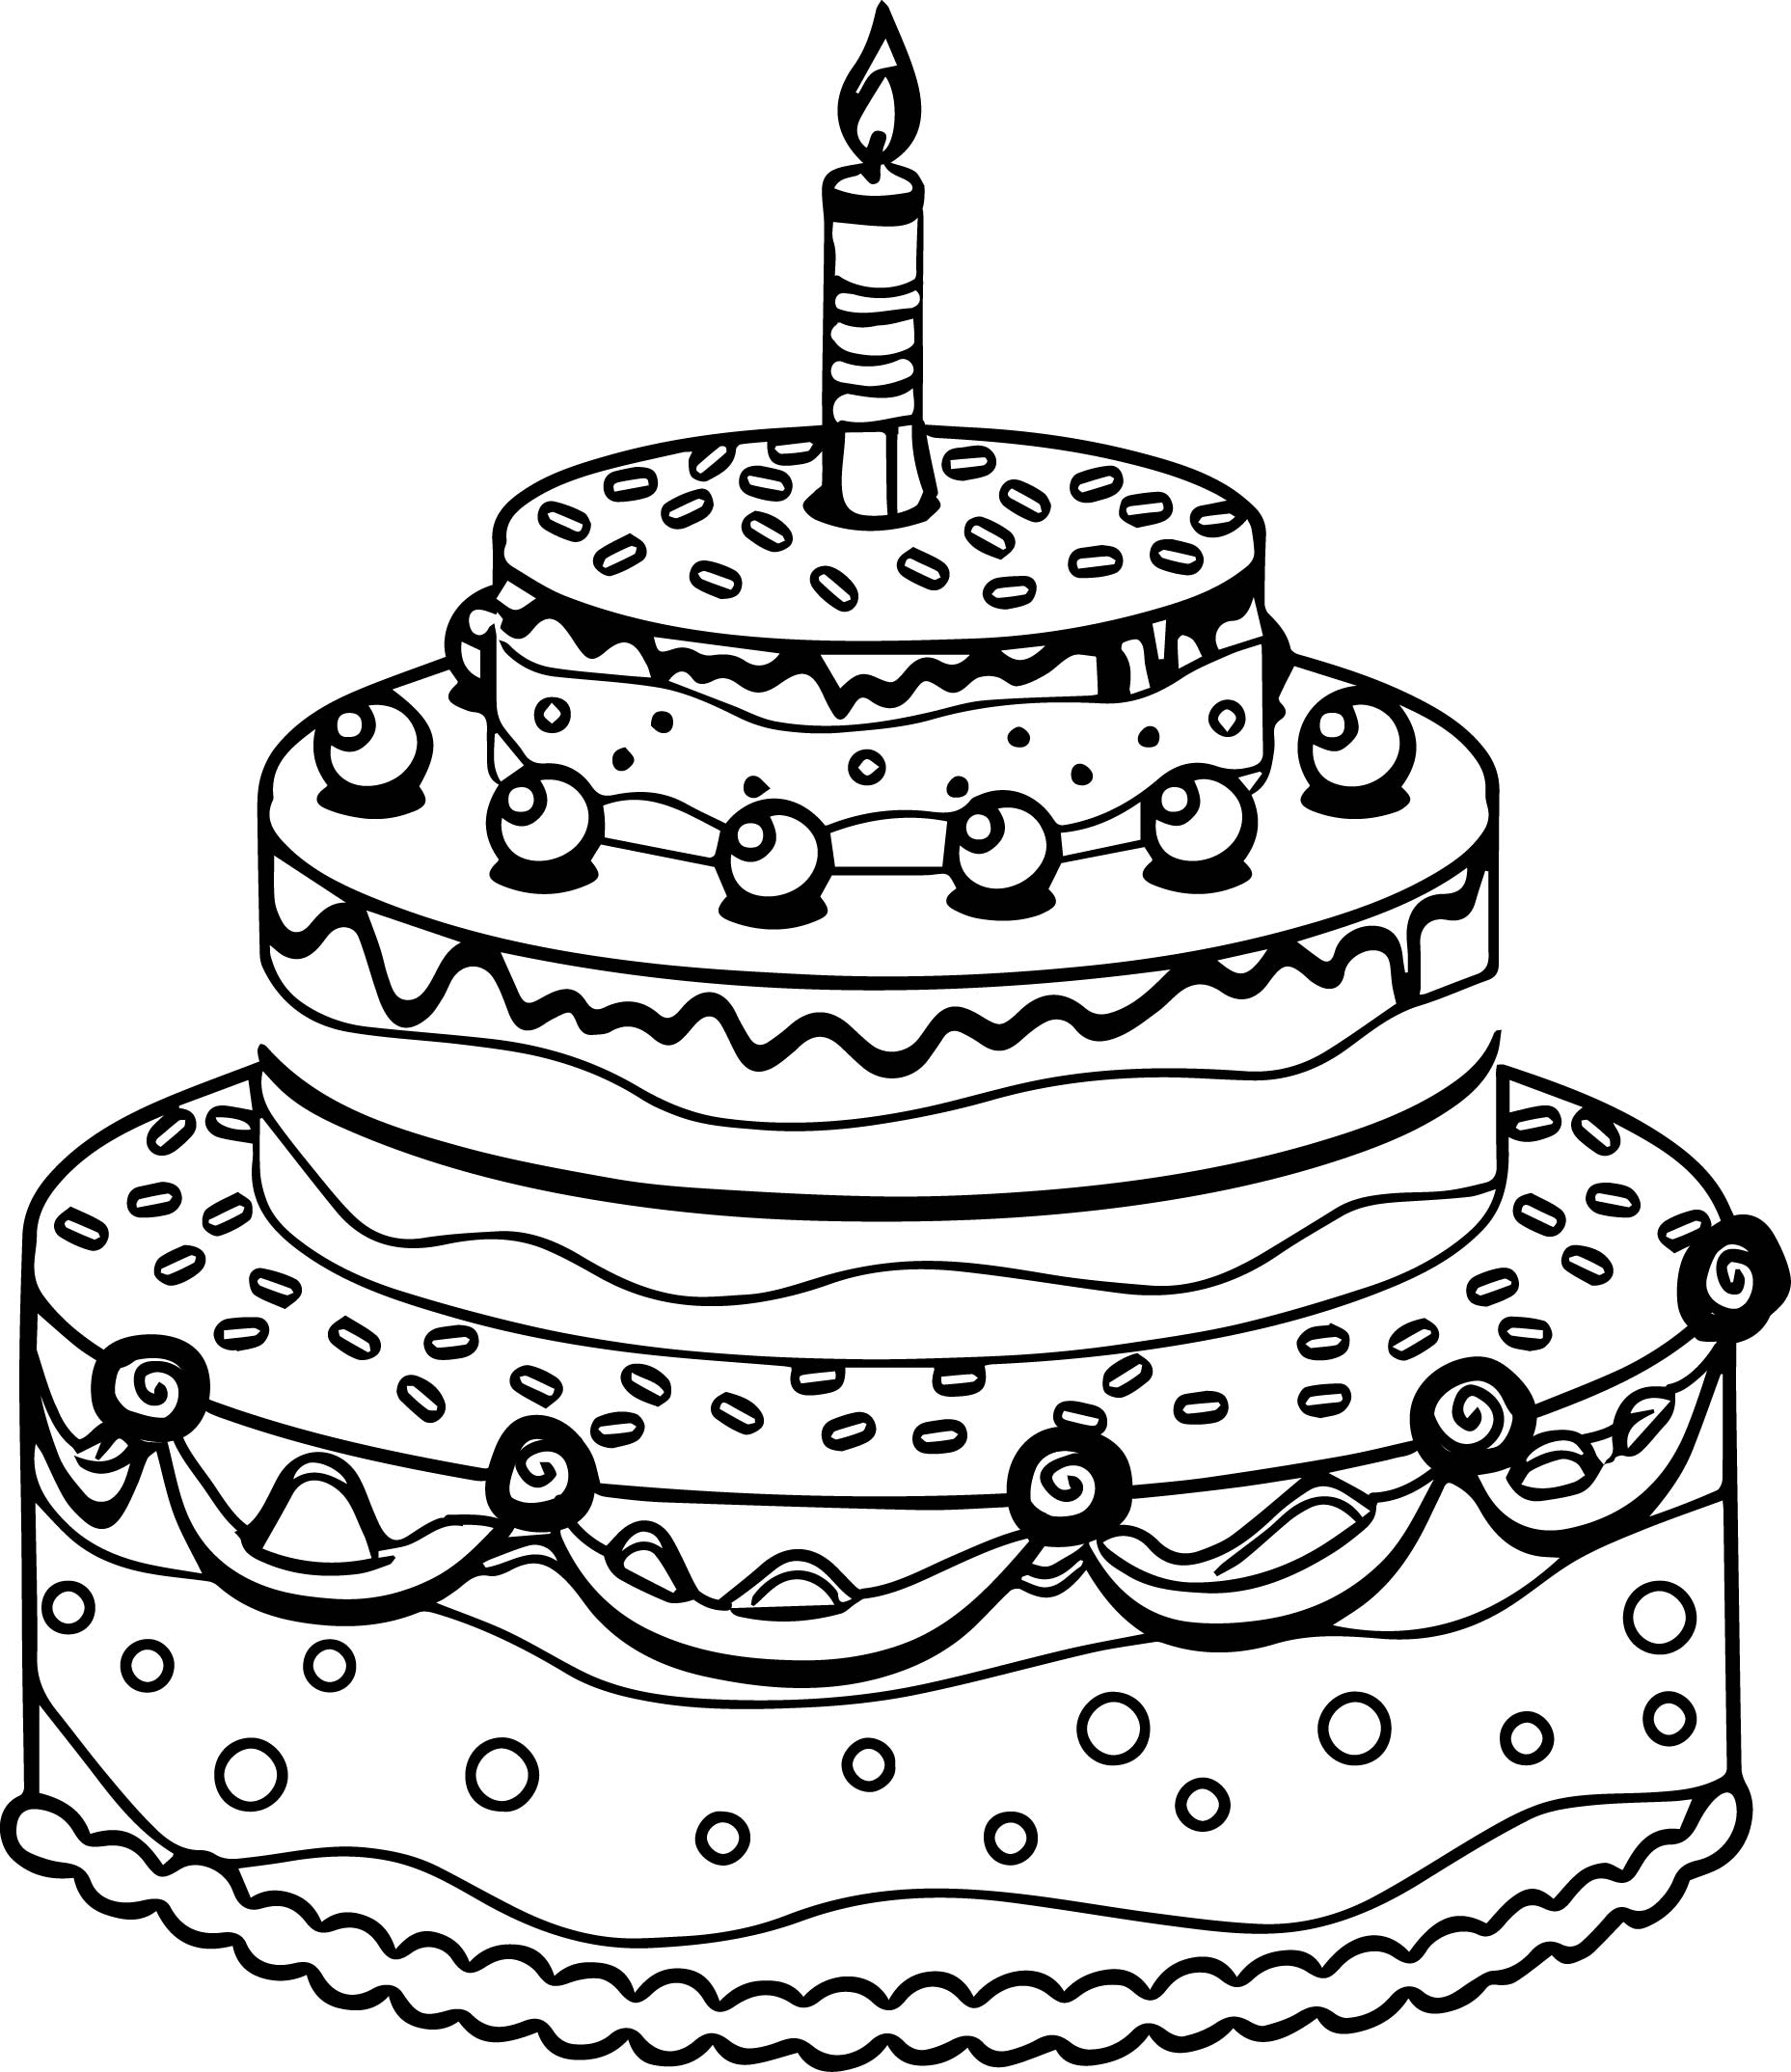 Cute Birthday Cake Coloring Page  Wecoloringpage